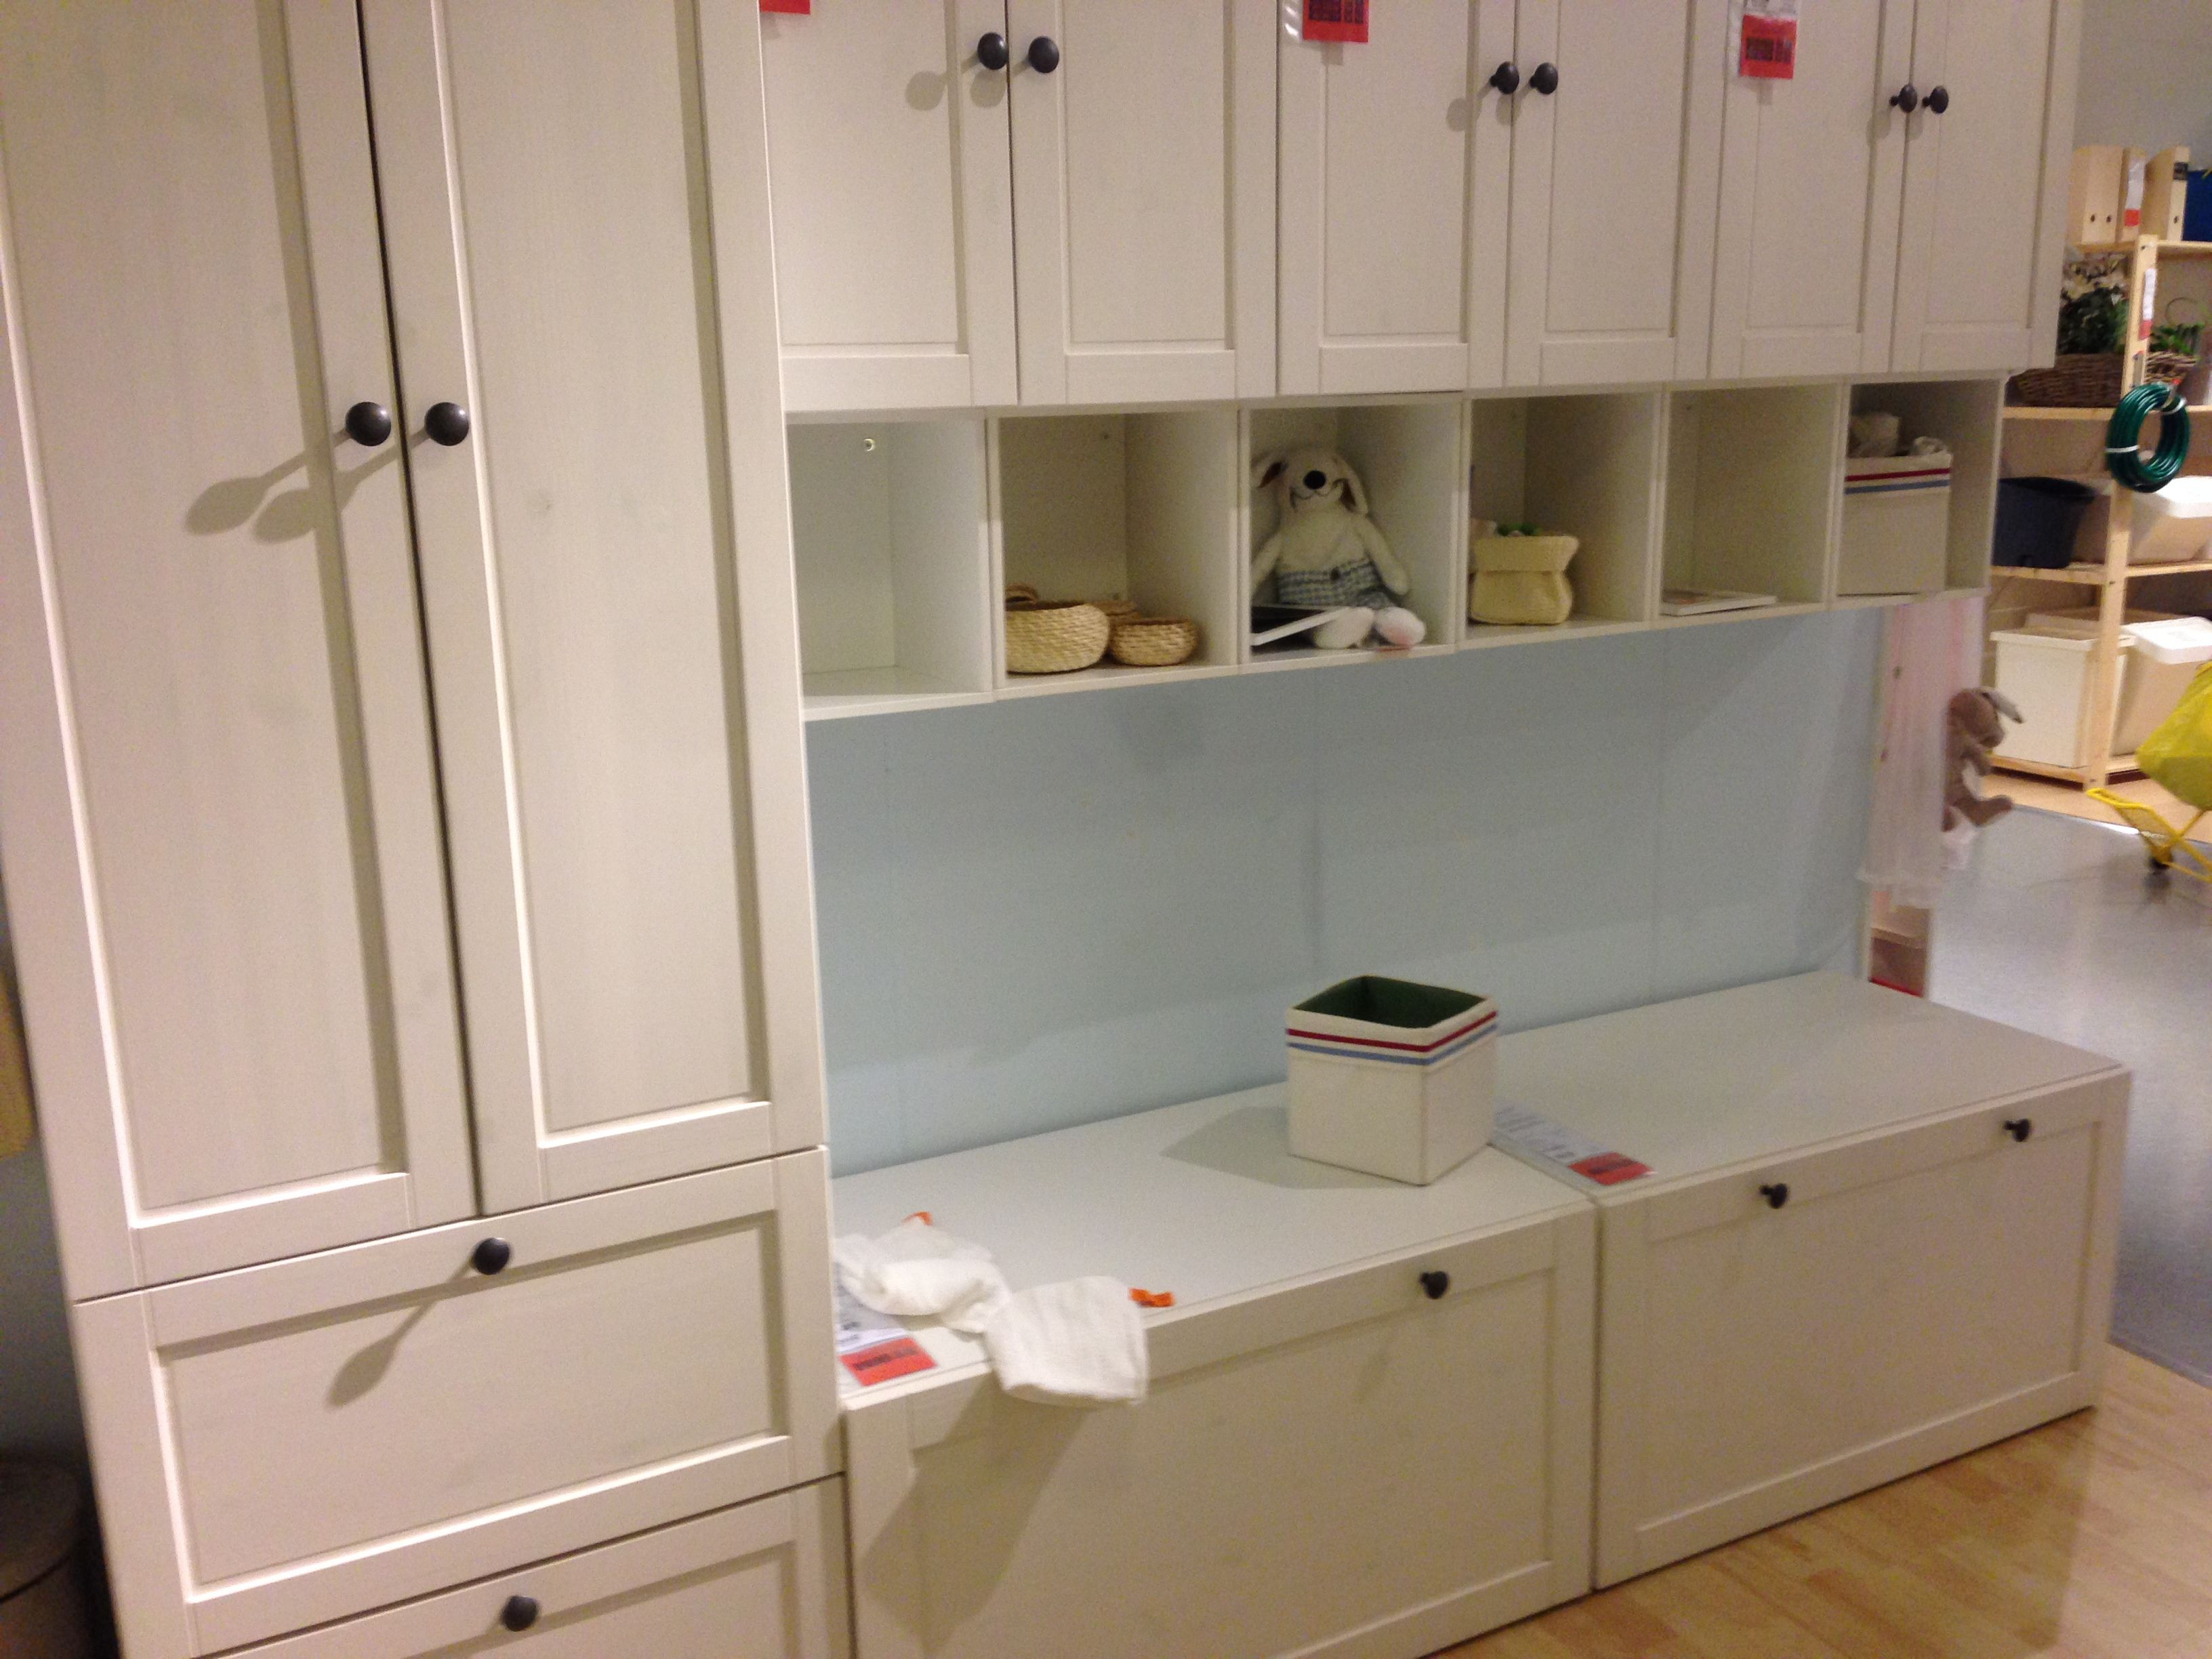 Ikea Stuva with Betsad doors and drawers. Matches the Ikea Sundvik ...